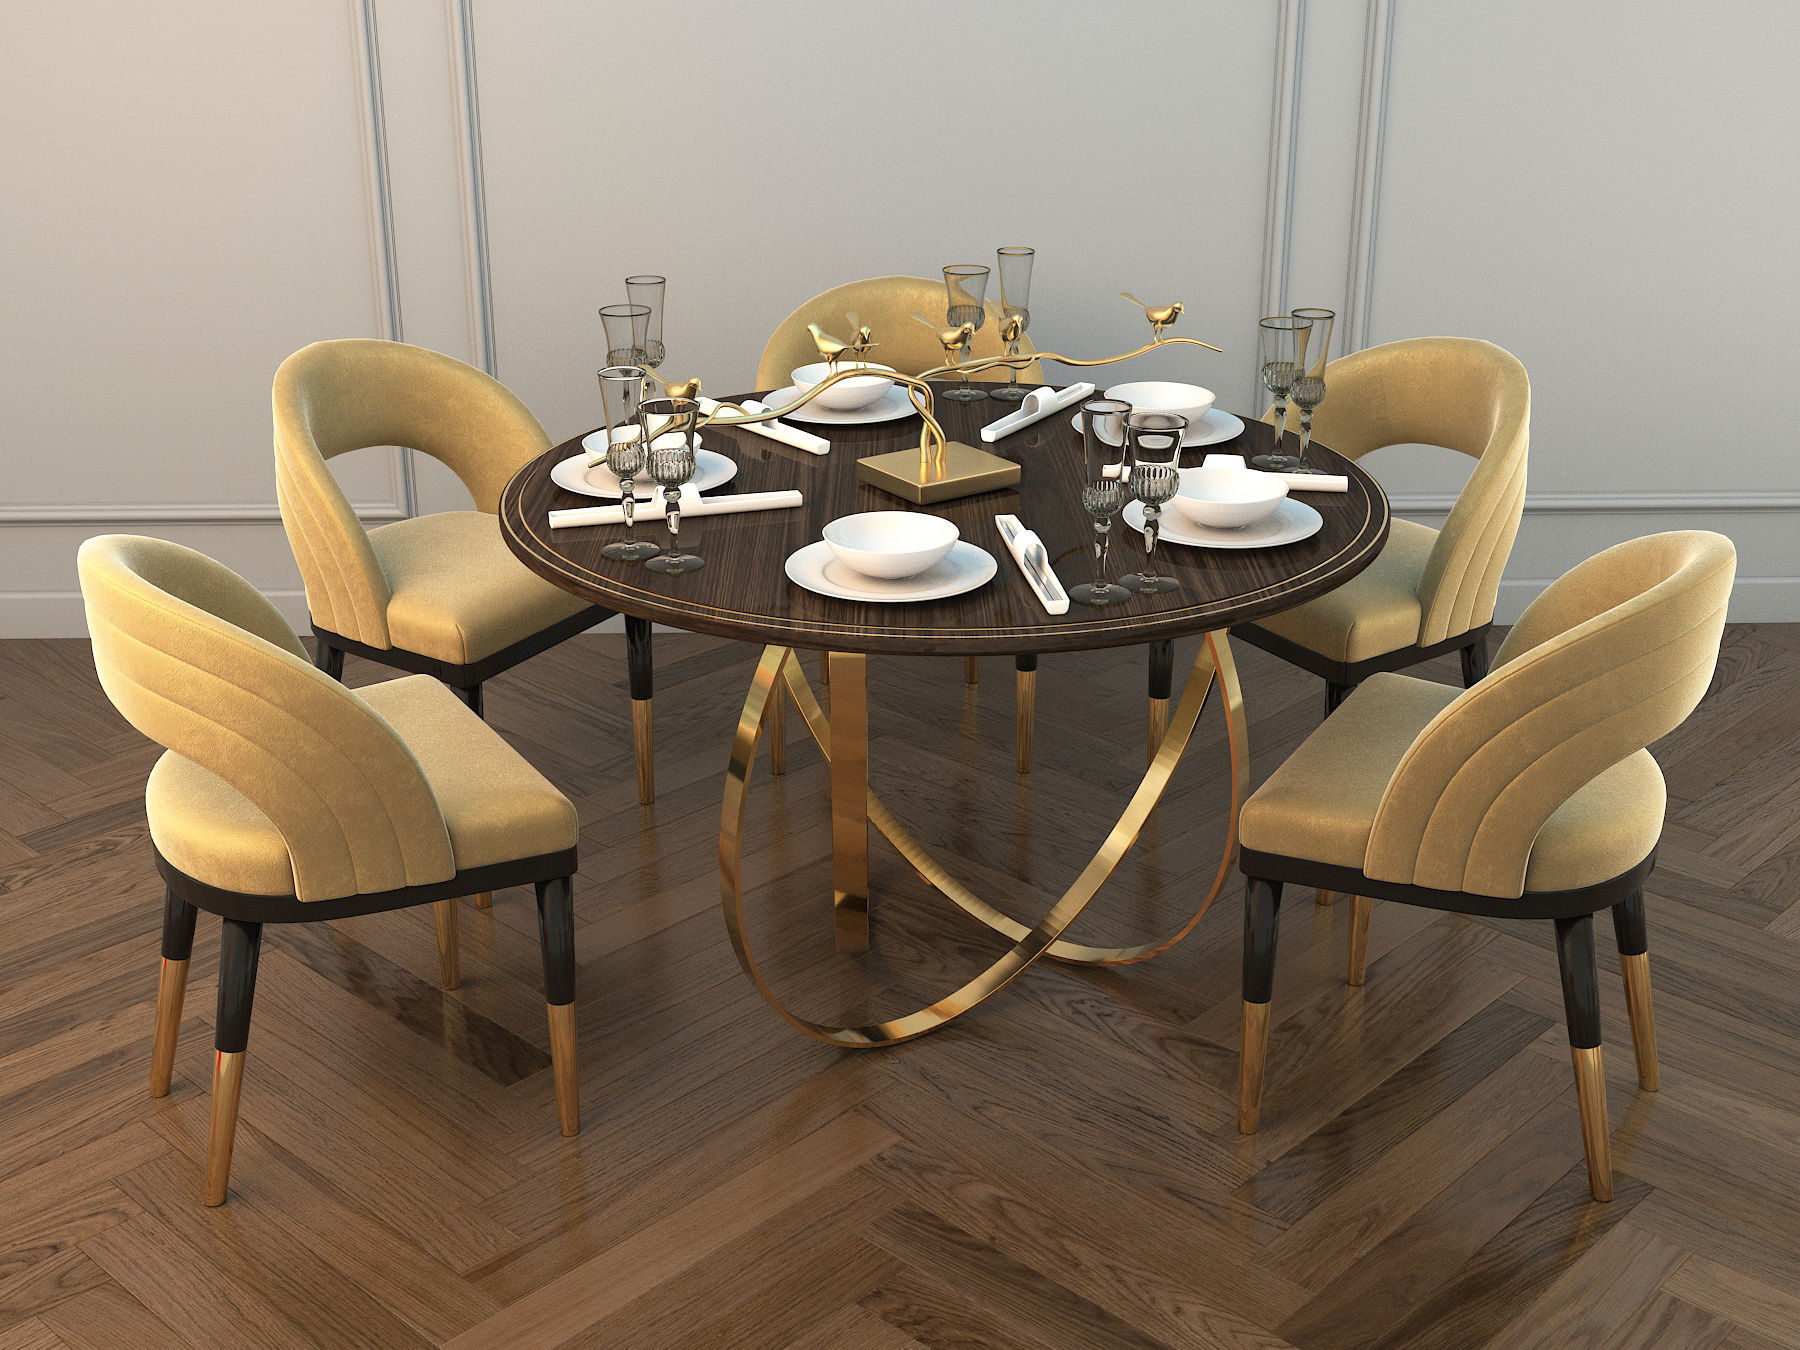 Cool Dining Table And Chairs Off 52, Cool Dining Room Table Chairs